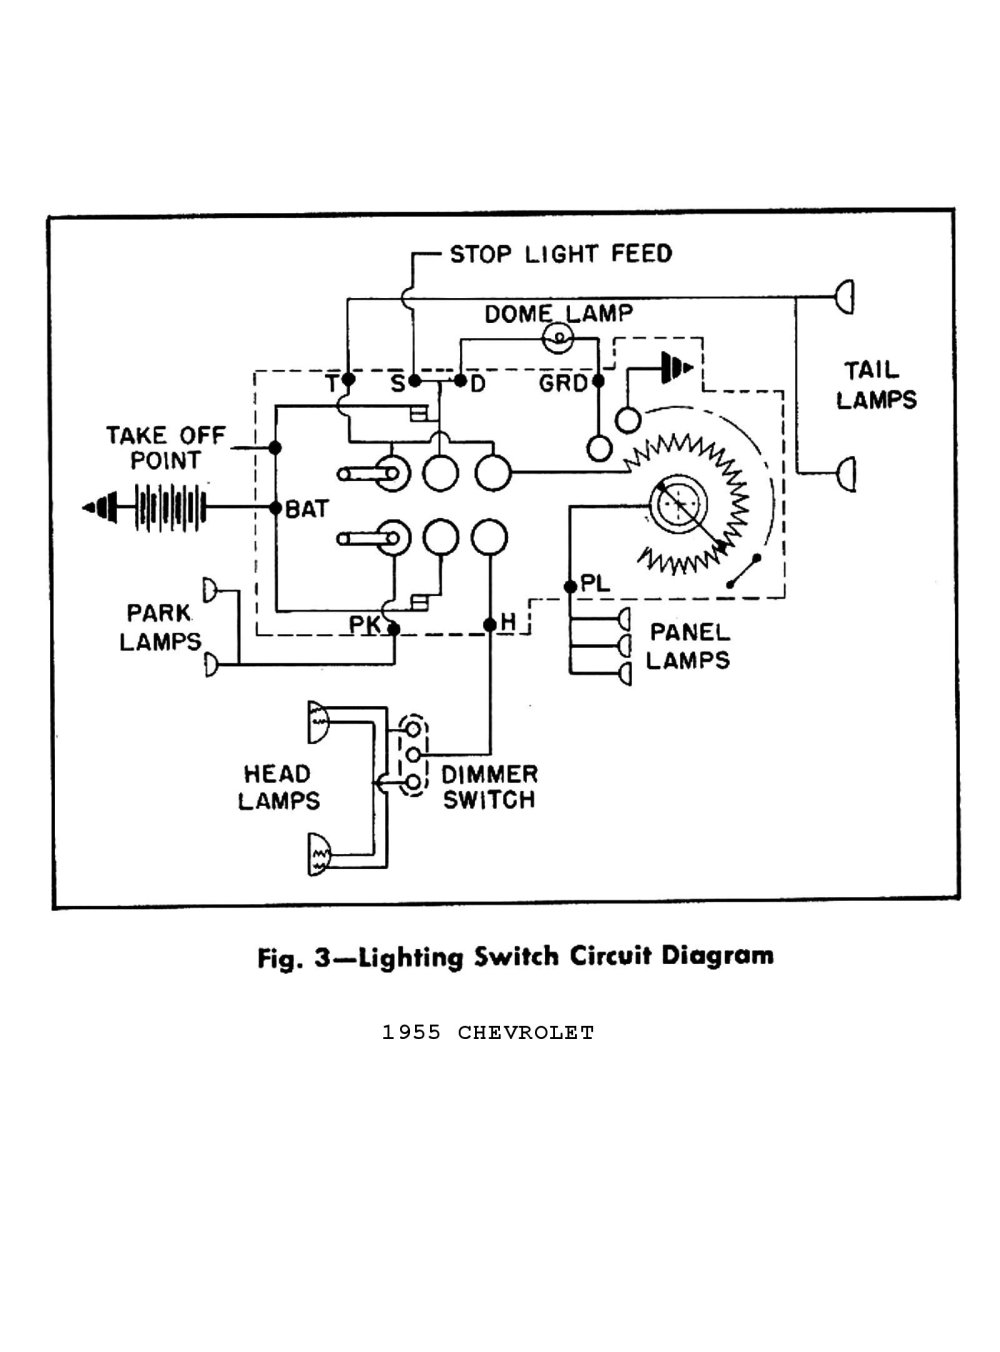 medium resolution of 1954 gm turn signal wiring diagram automotive wiring diagrams gm tilt column wiring diagrams 1954 gm turn signal wiring diagram